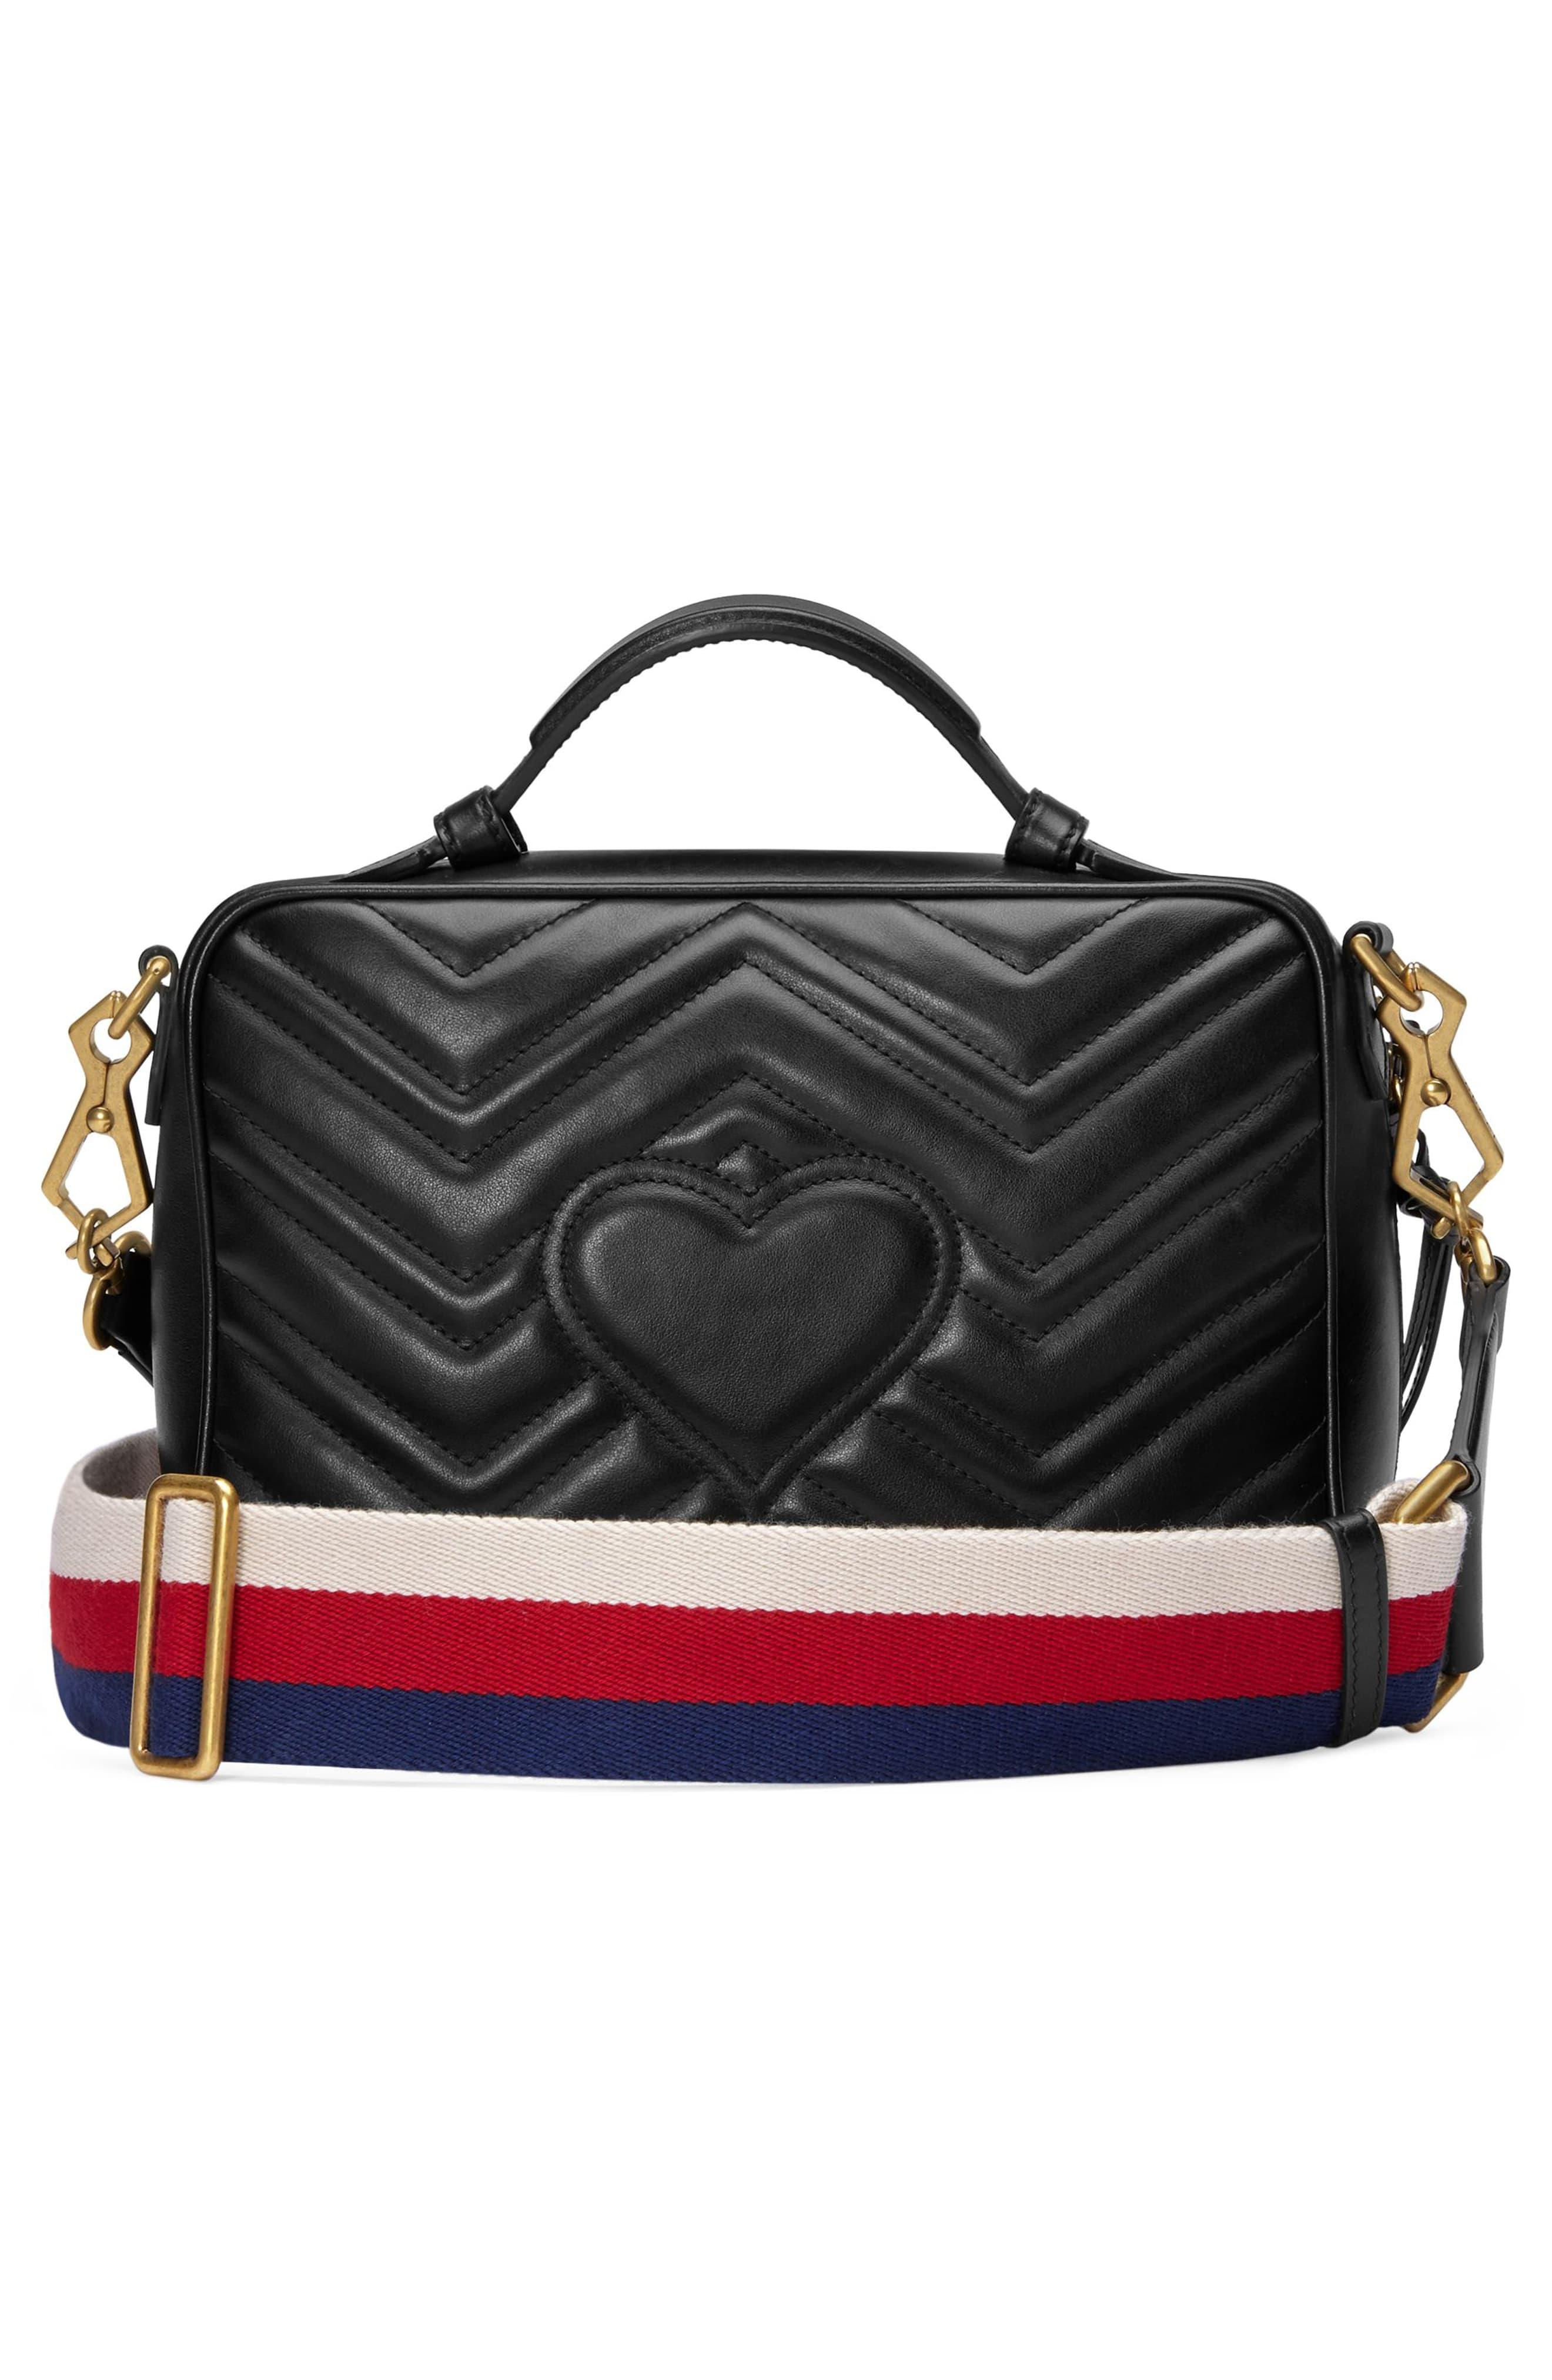 8541022910ce3e Gucci - Black Small Gg Marmont 2.0 Matelassé Leather Camera Bag With Webbed  Strap - -. View fullscreen